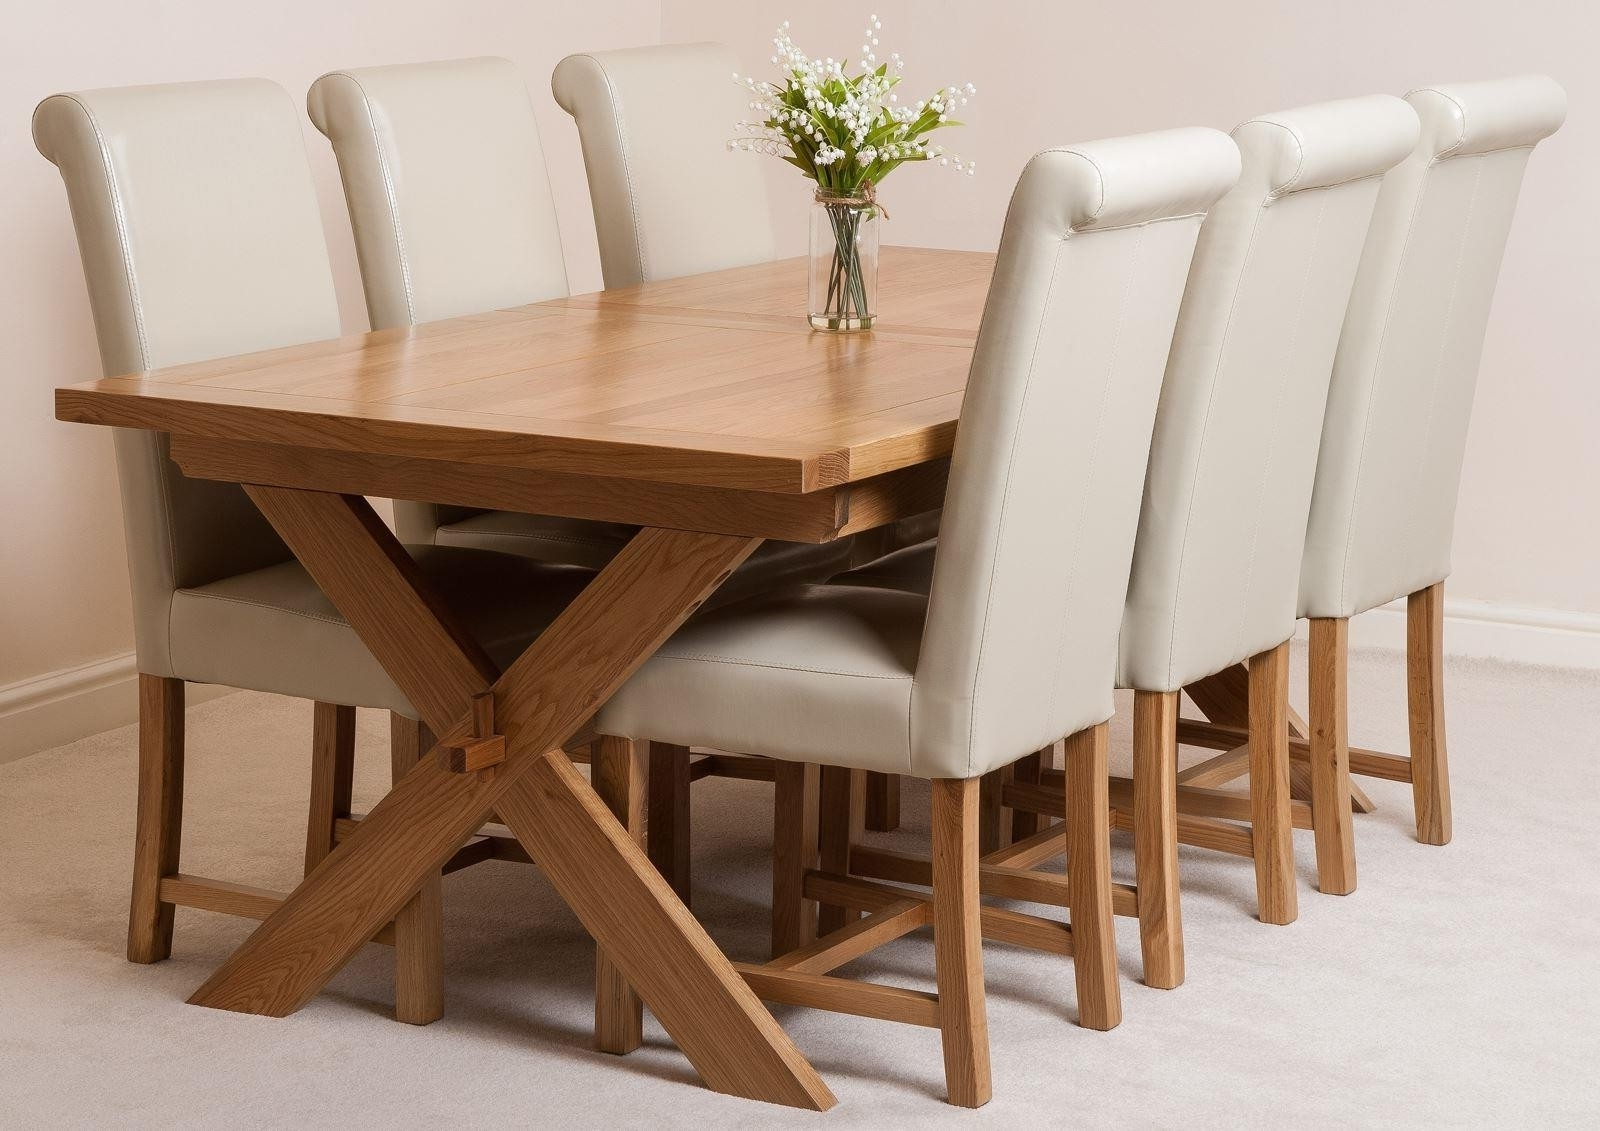 Oak Furniture King Regarding Oak Furniture Dining Sets (View 19 of 25)